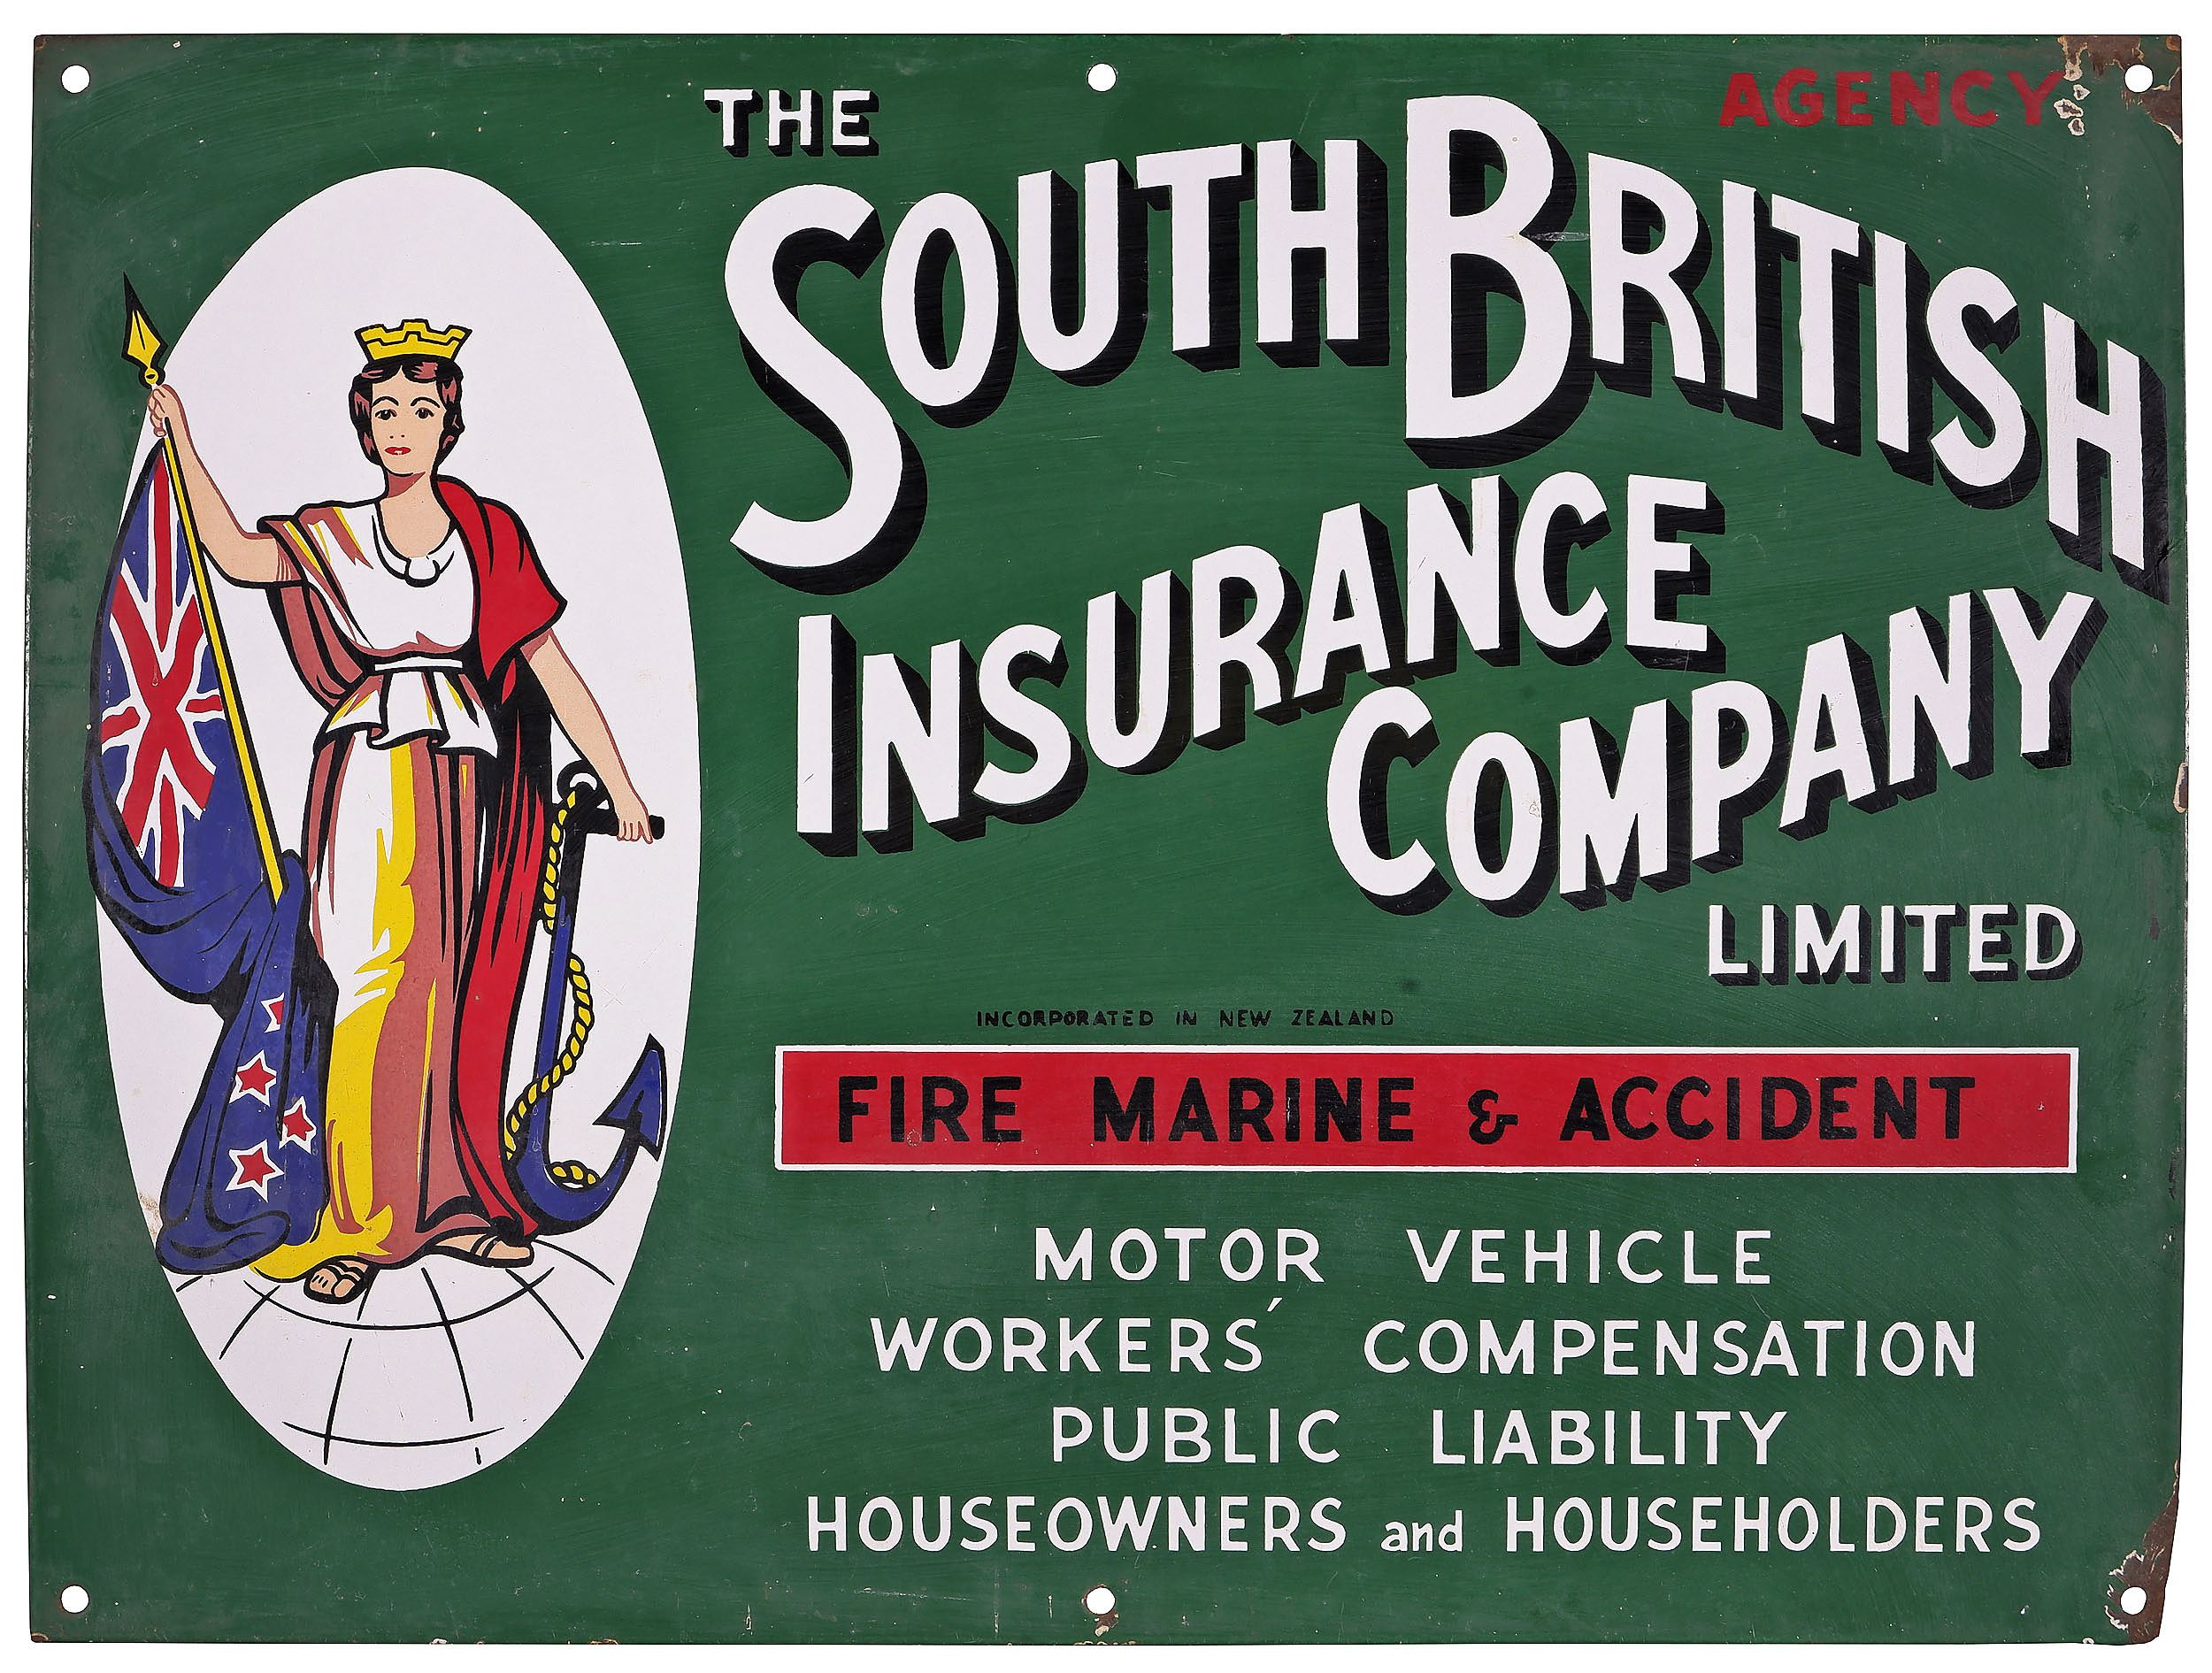 'Genuine The South British Insurance Company Enamel Advertising Sign'